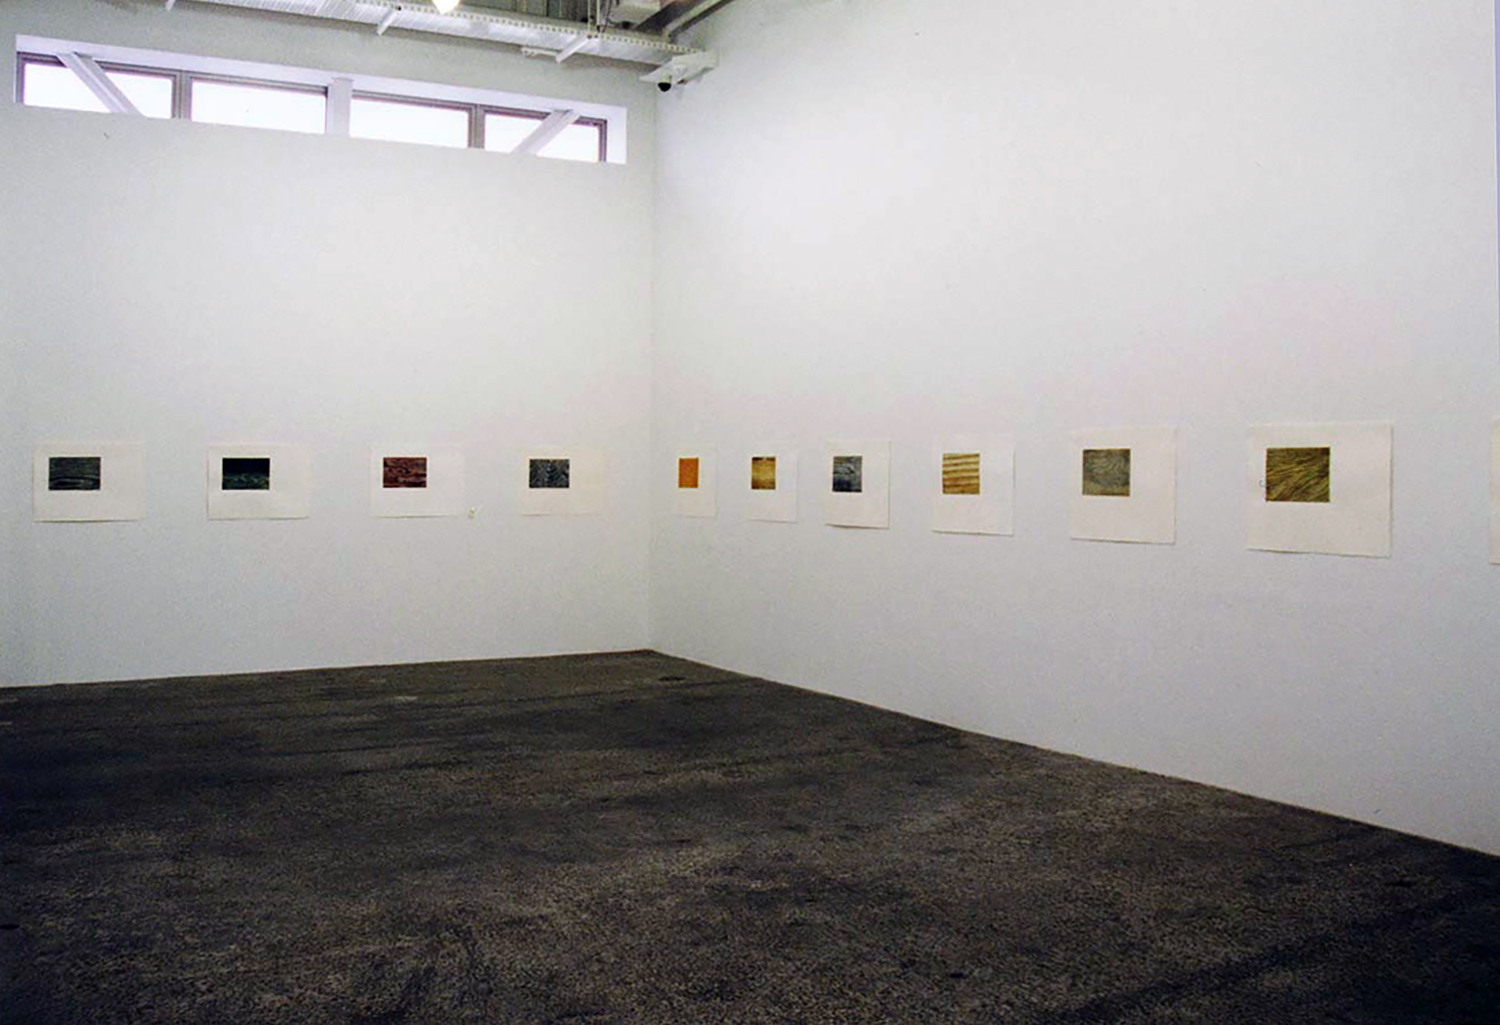 Installation View<br>Gallery Yamaguchi space<br>Untitled, pastel on paper 50 x 60 cm 2000 each :21 pieces